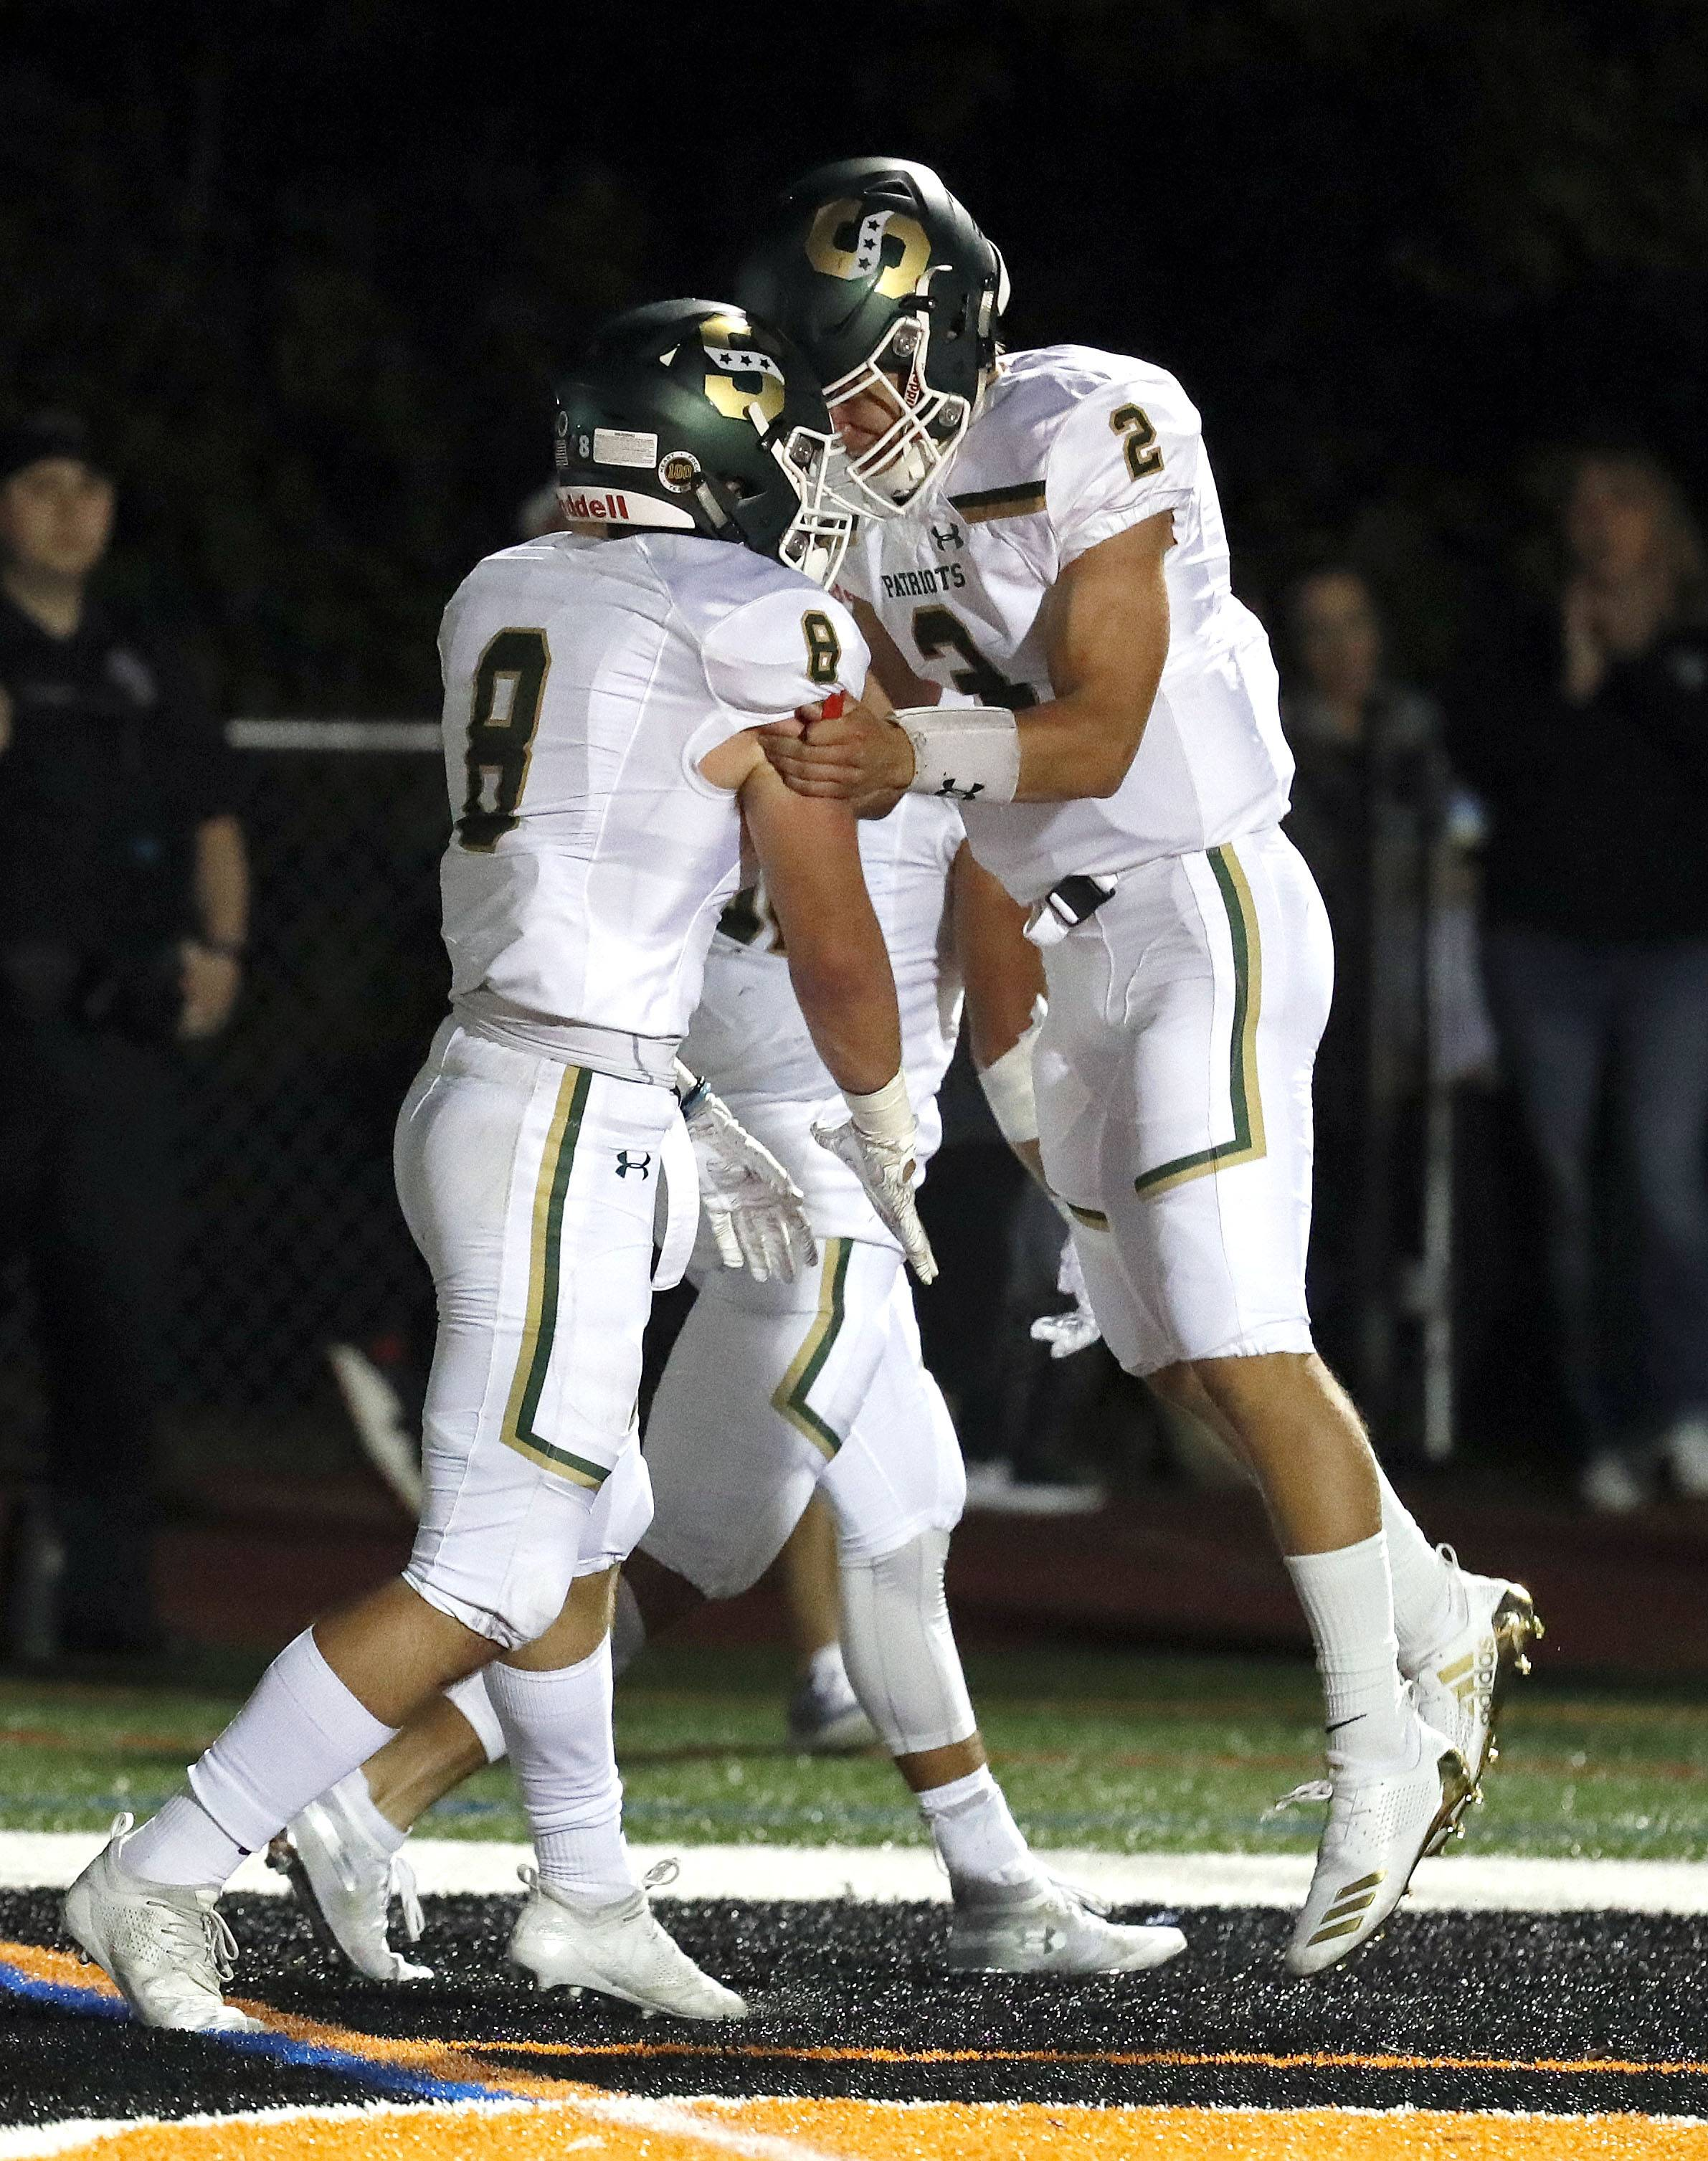 Stevenson's Cole Okmin (2) celebrates with Ryan McElhinny after his touchdown run during their game Friday night in Libertyville.